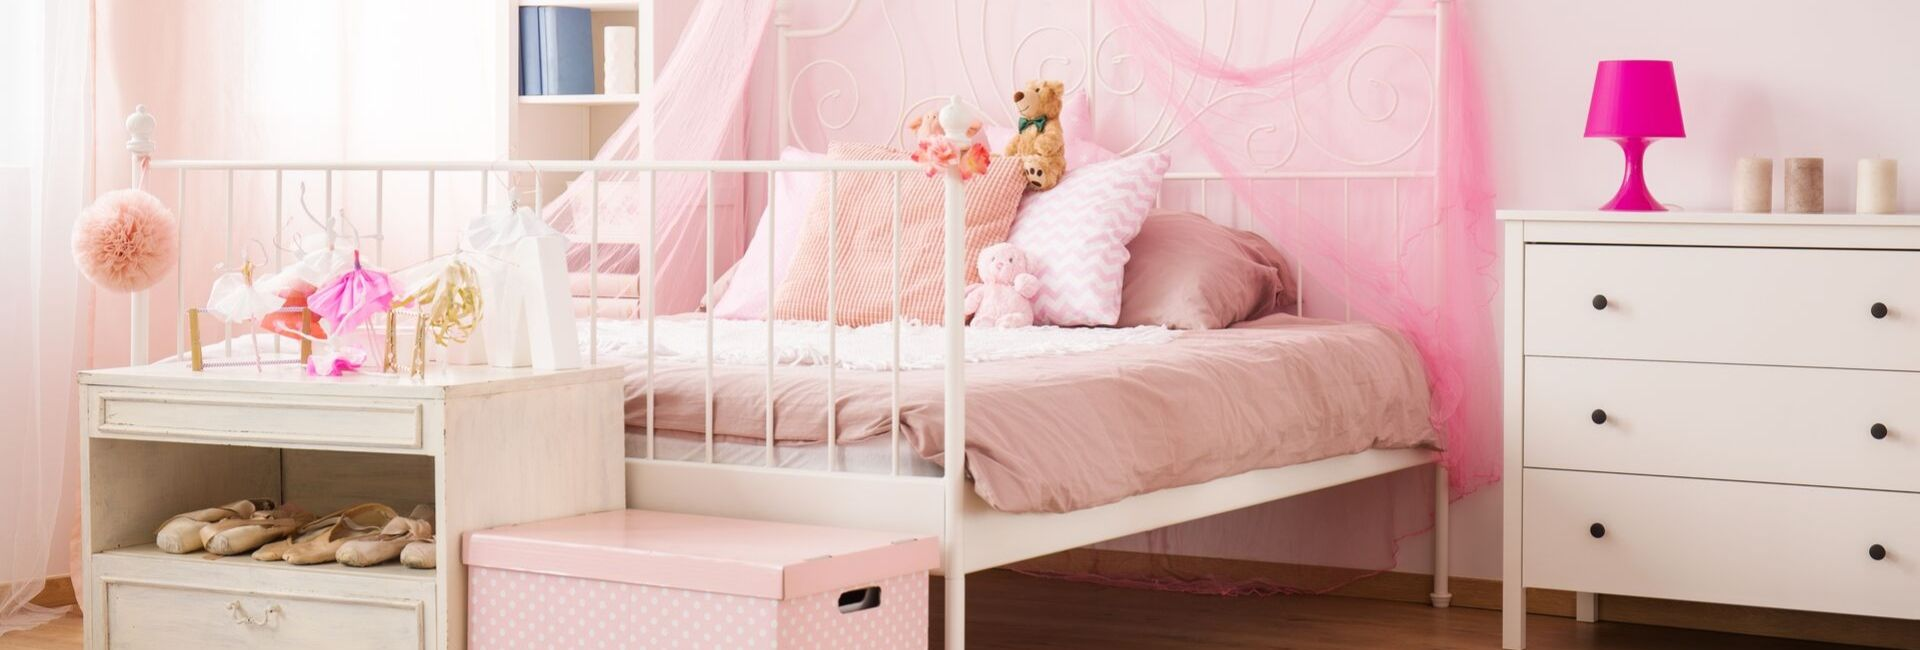 deco chambre fille rose.jpg